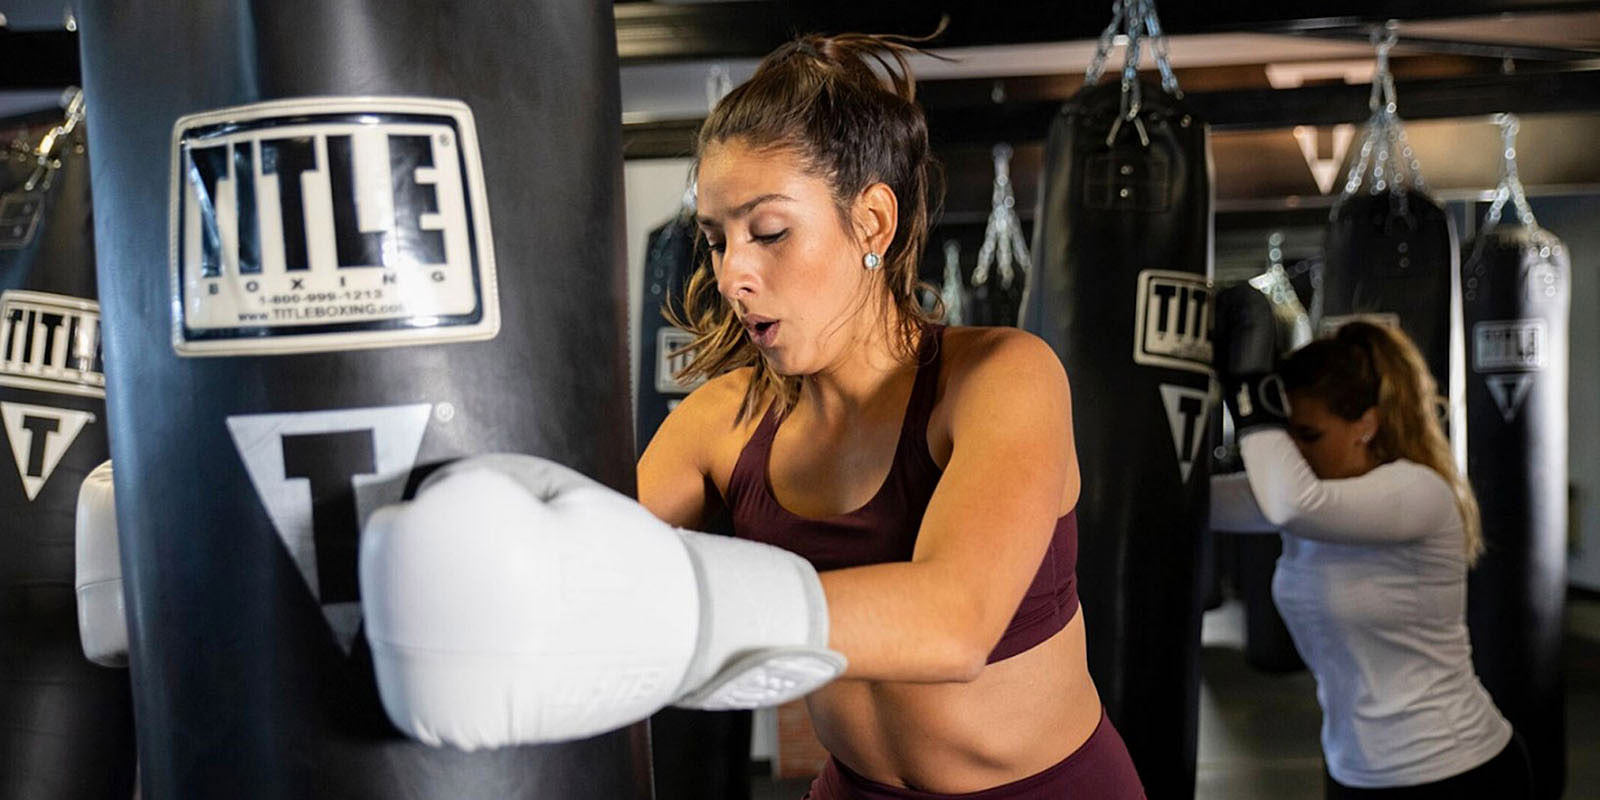 Woman kicking a heavy bag during a TITLE BoxingClubclass